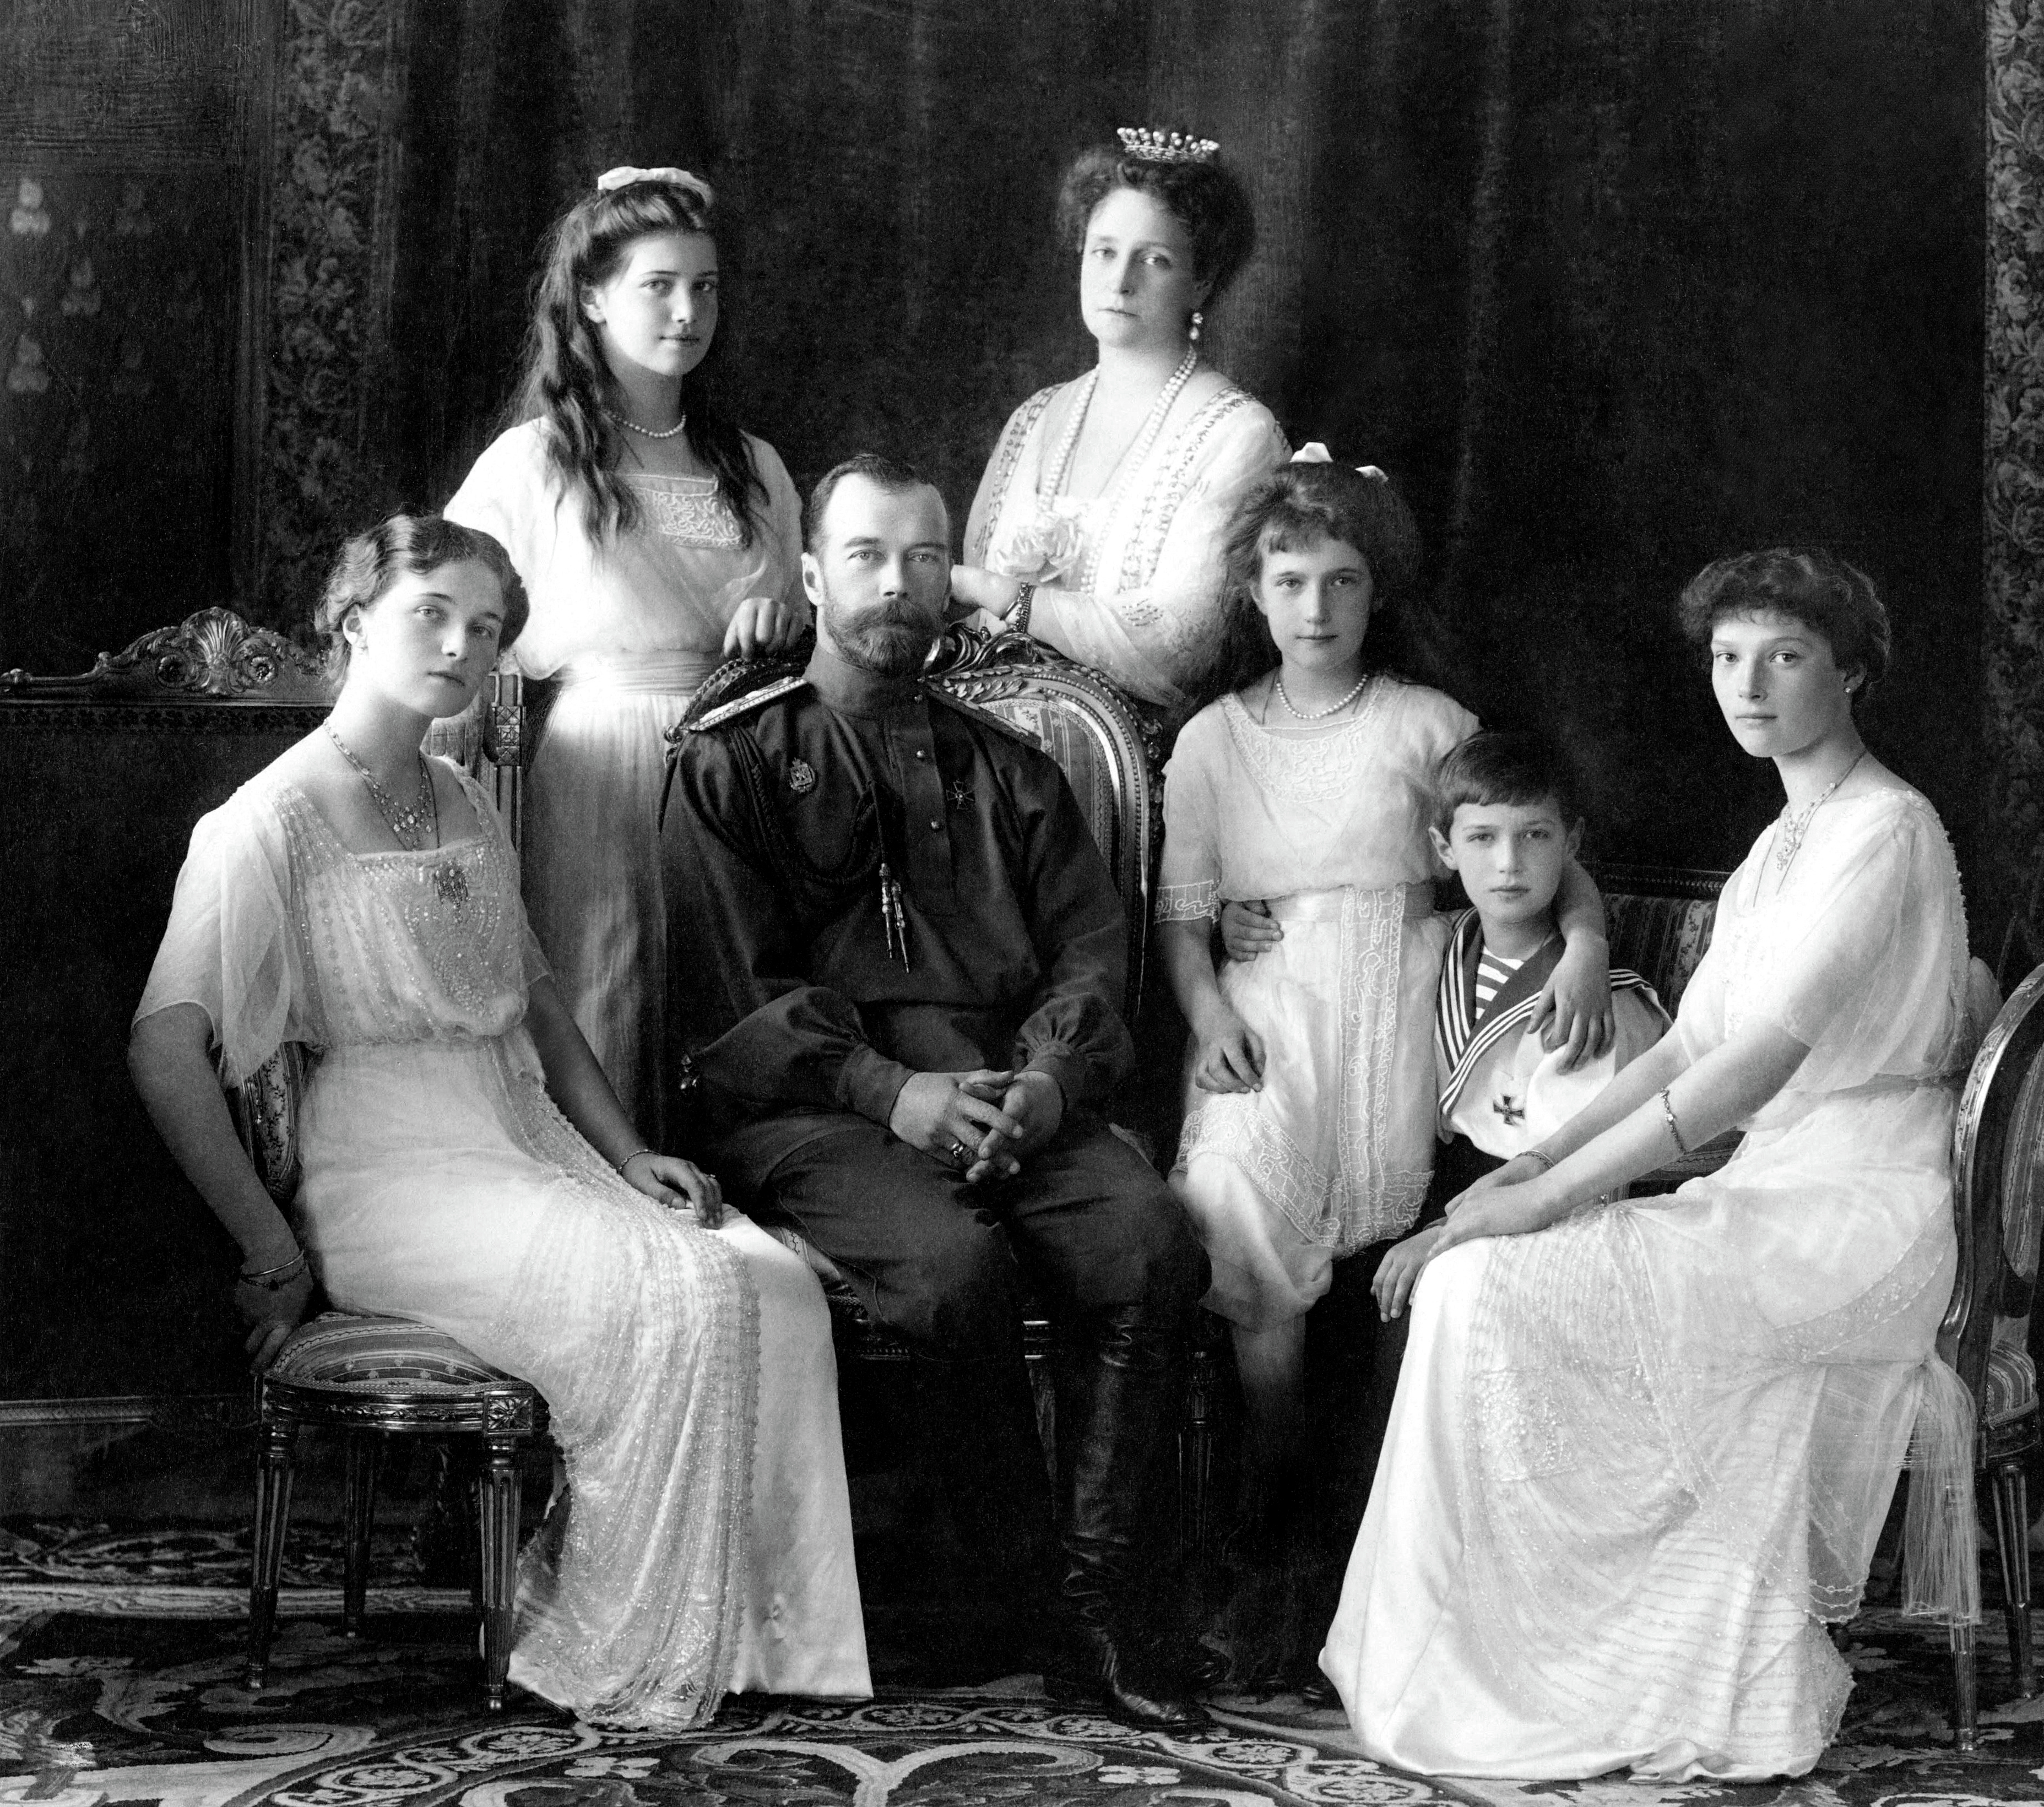 Czar Nicholas II in 1913 with his empress, Alexandra, and their children. In 1918, they were murdered by their communist captors. (Public Domain)